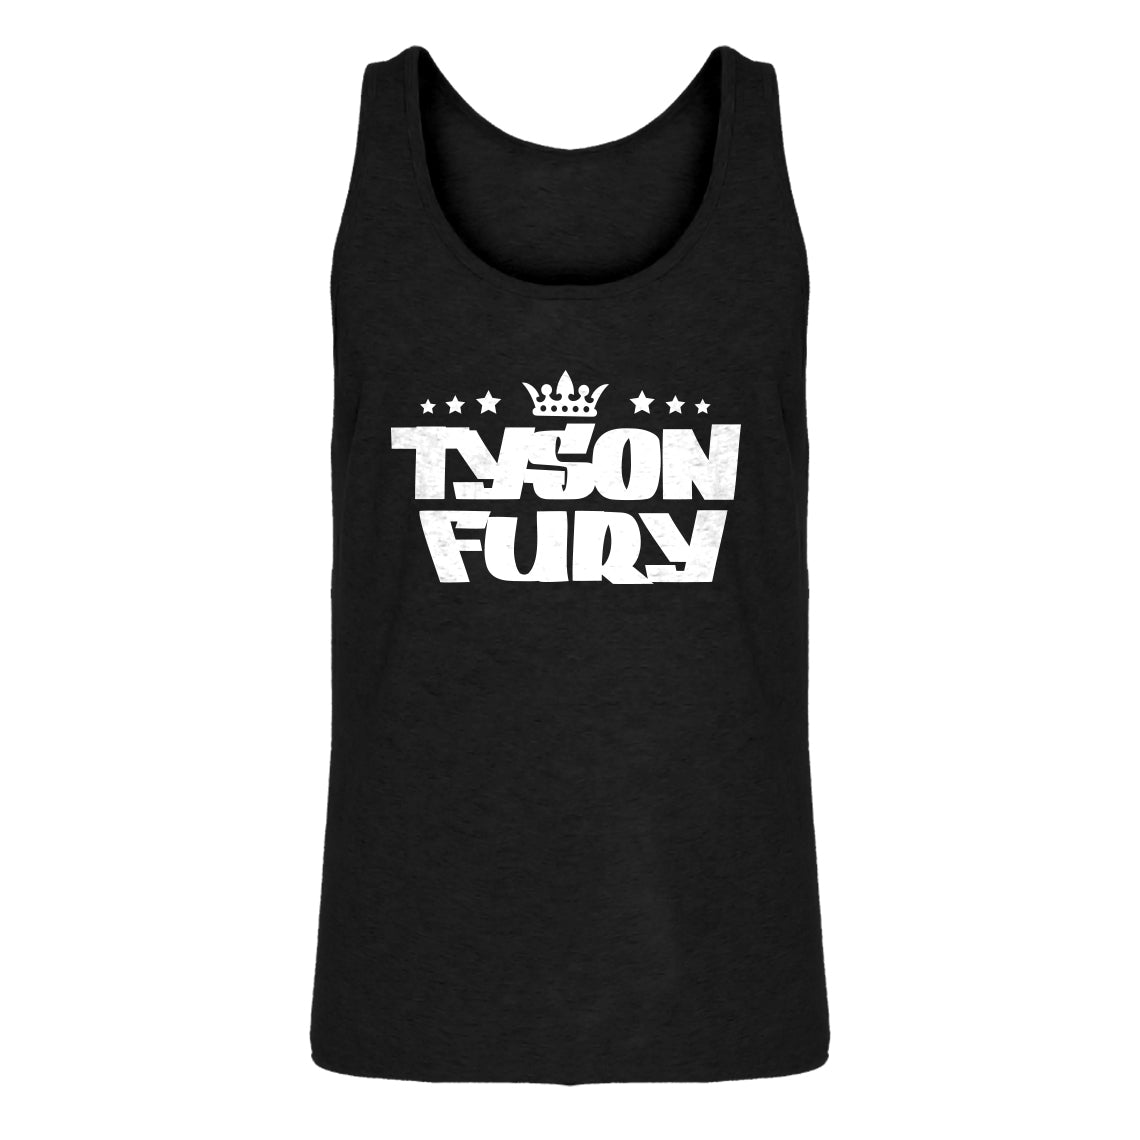 Mens Tyson Fury The Gypsy King Jersey Tank Top